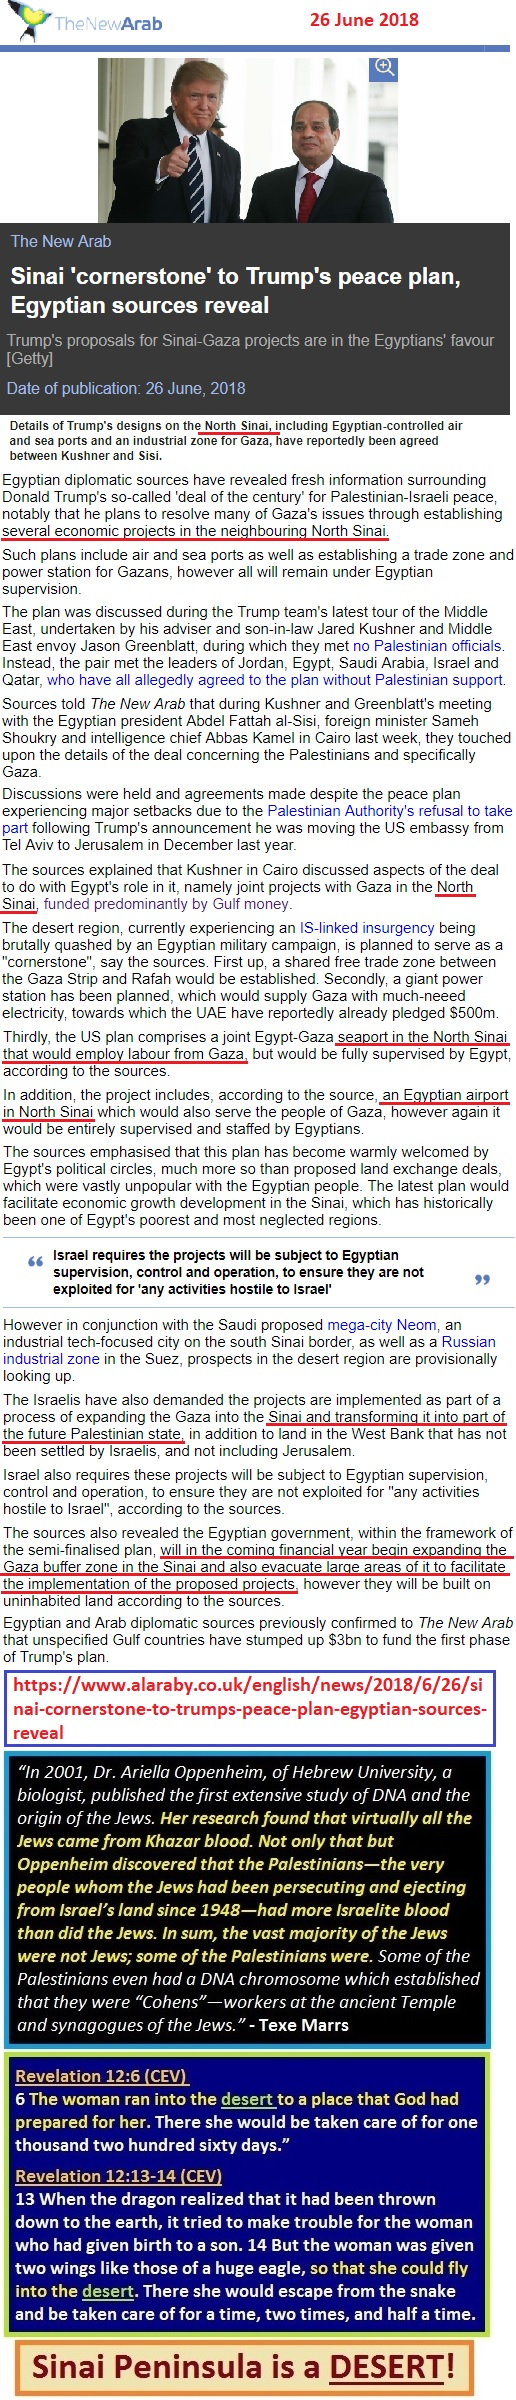 https://www.alaraby.co.uk/english/news/2018/6/26/sinai-cornerstone-to-trumps-peace-plan-egyptian-sources-reveal